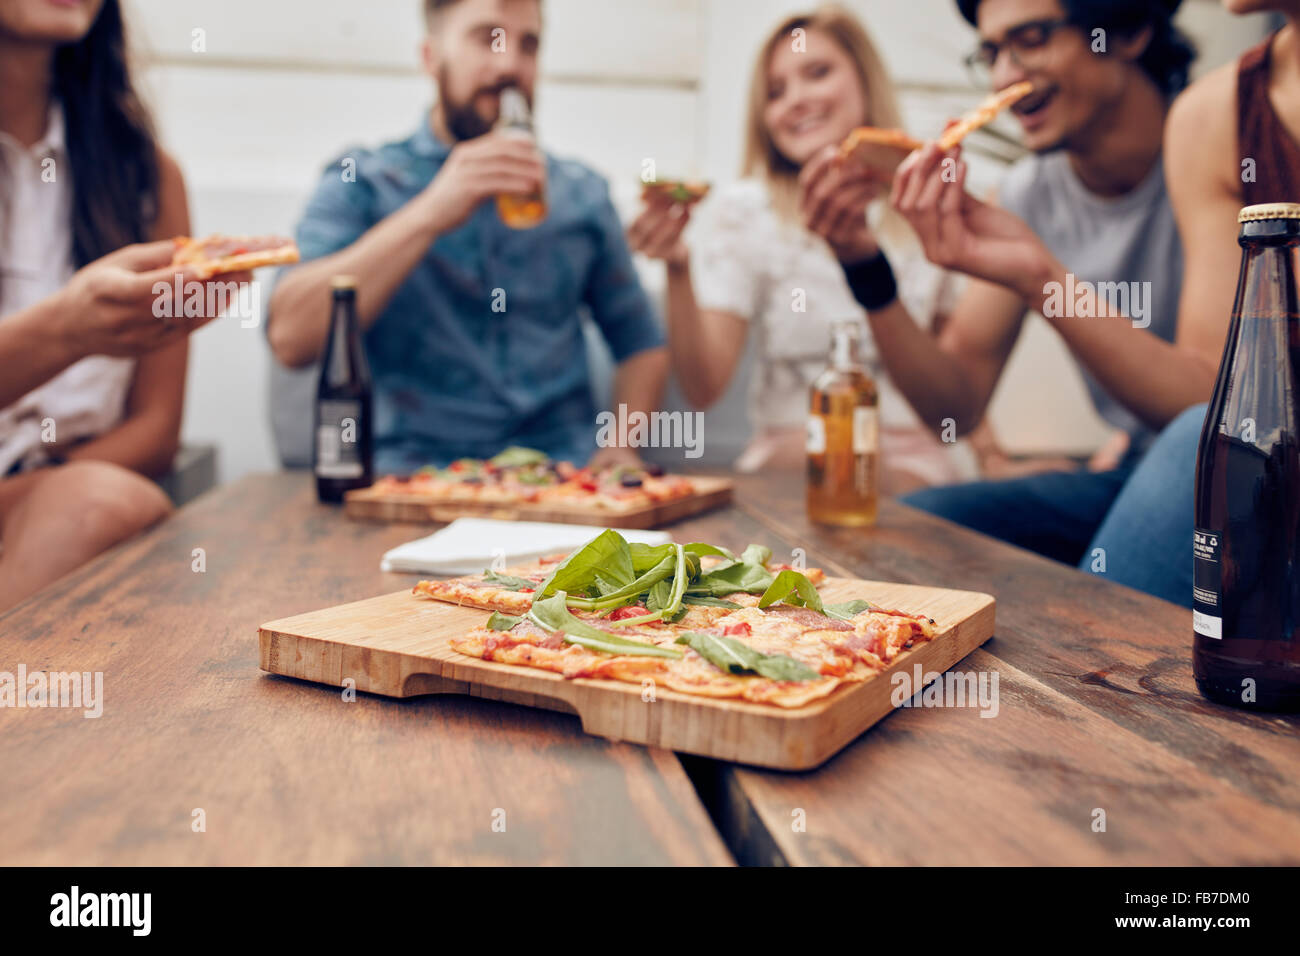 Close up shot of pizza on wooden plate with people eating and drinking in background. Group of friends gathered - Stock Image